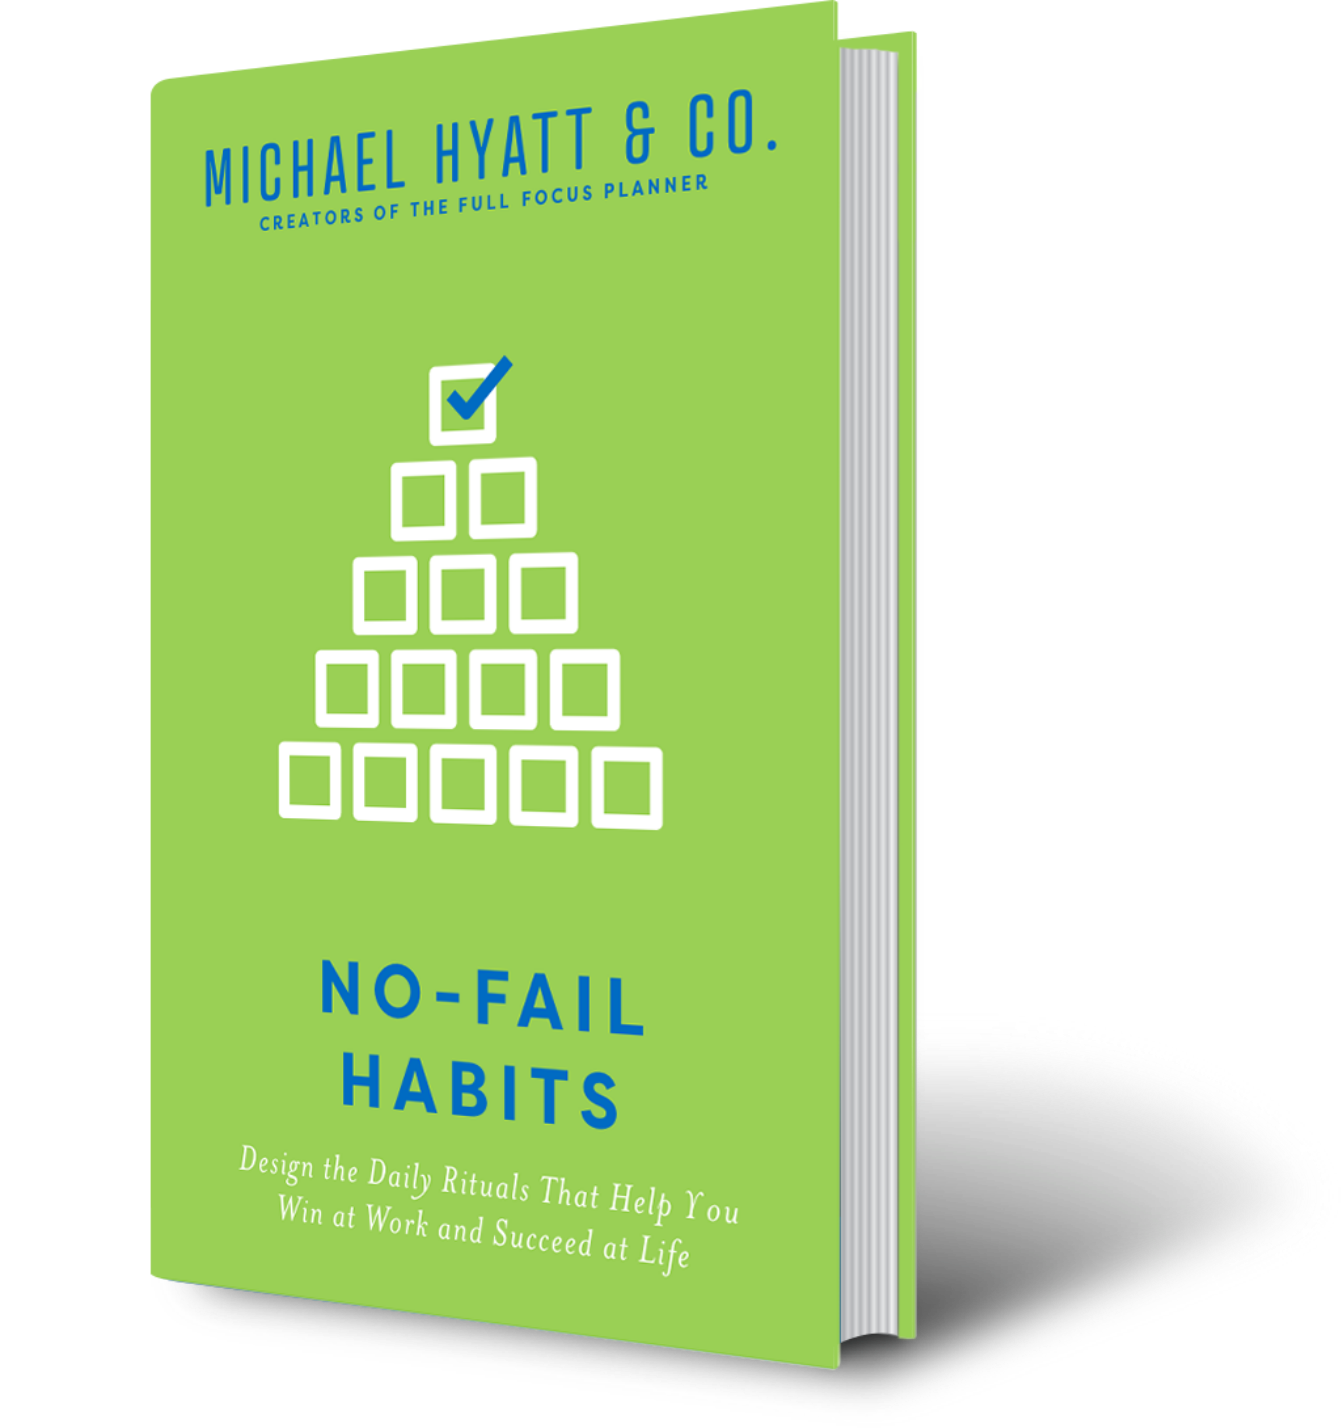 No-Fail Habits book